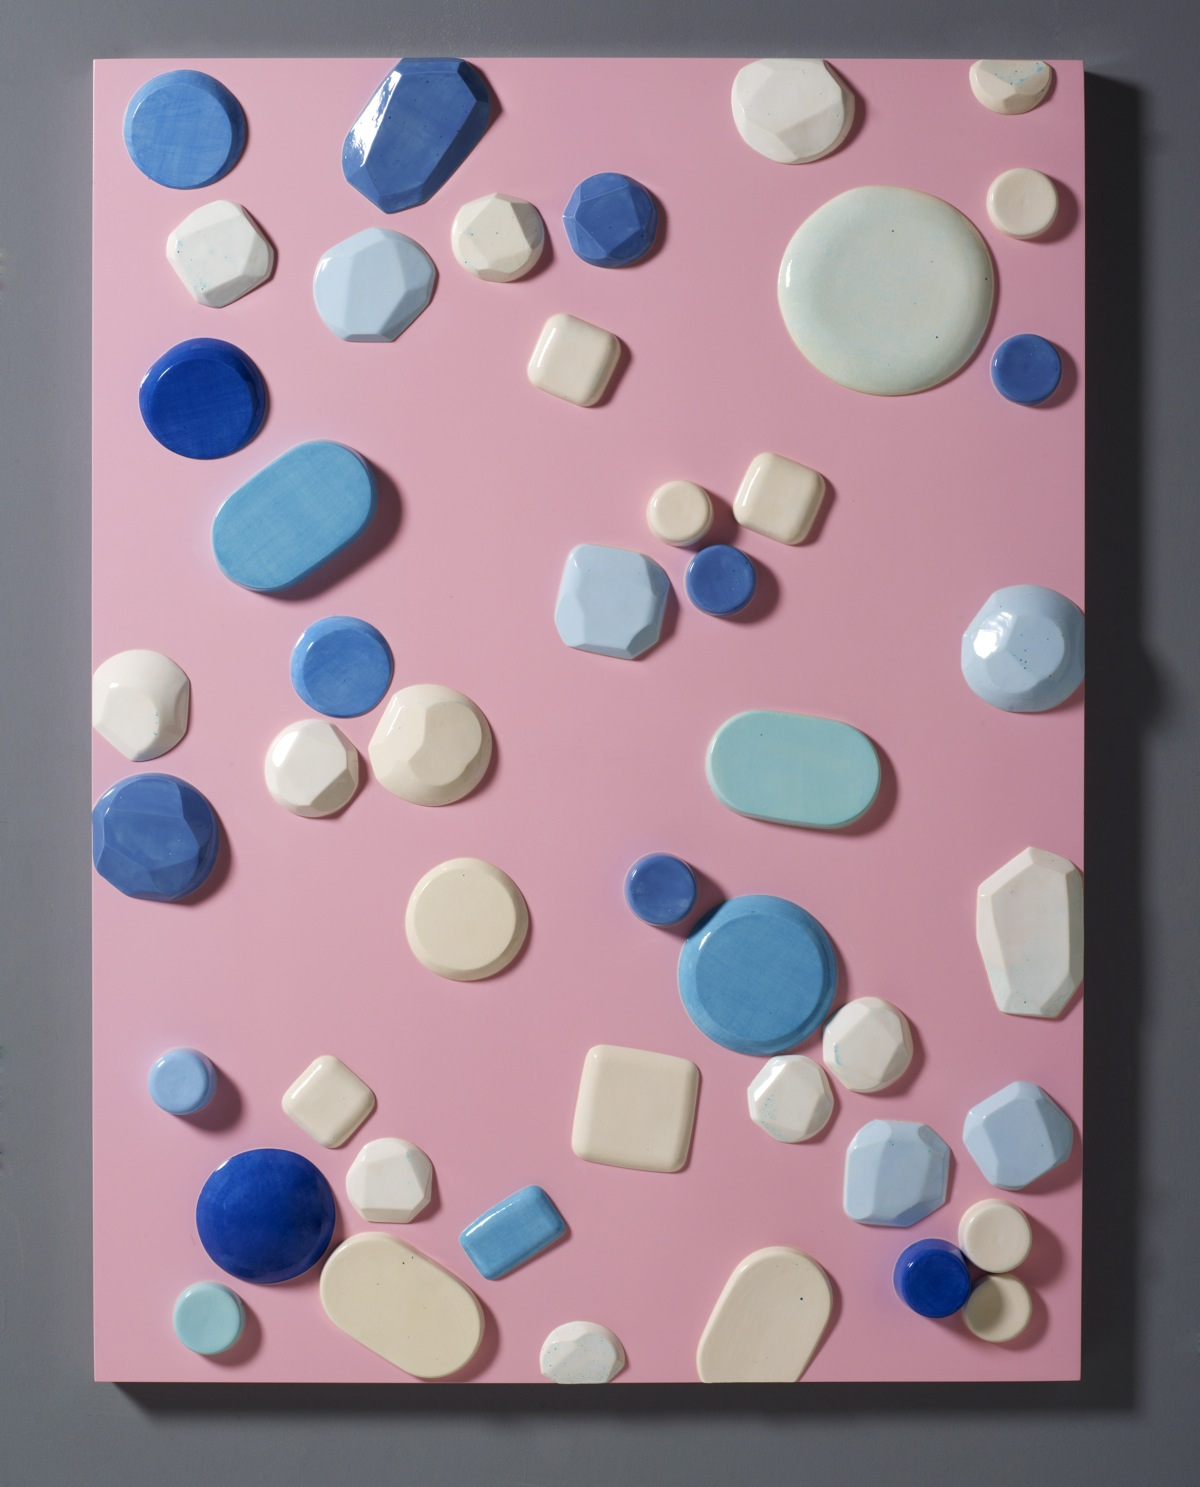 """Candy Series #2 – 2012 – High Fired Ceramics on Automotive Finished Panel – 48 x 36 <a href=""""mailto:judbergeron@mac.com?subject=Inquire: Candy Series #2 – 2012"""">Inquire</a>"""